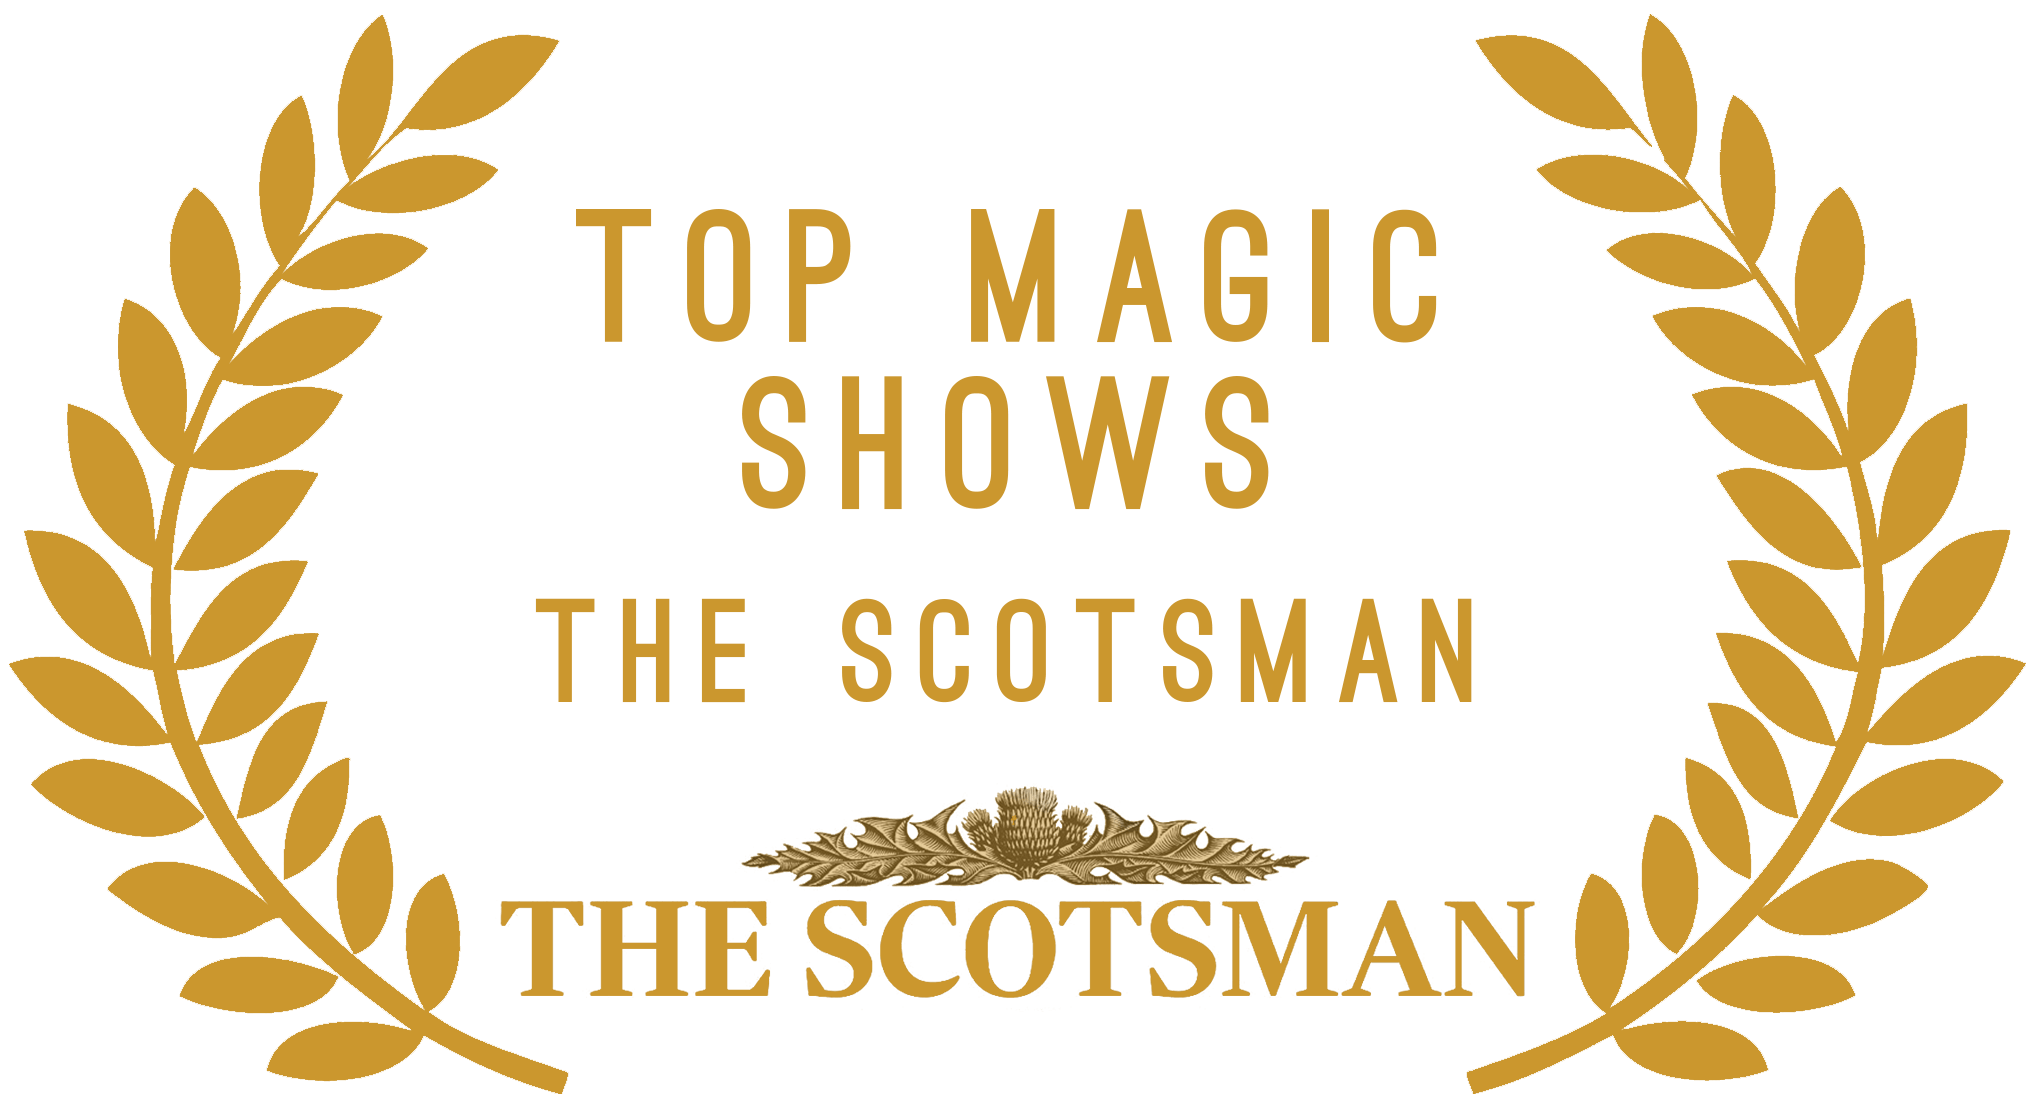 The scotsman top magic show award for edinburgh fringe magic show at edfringe